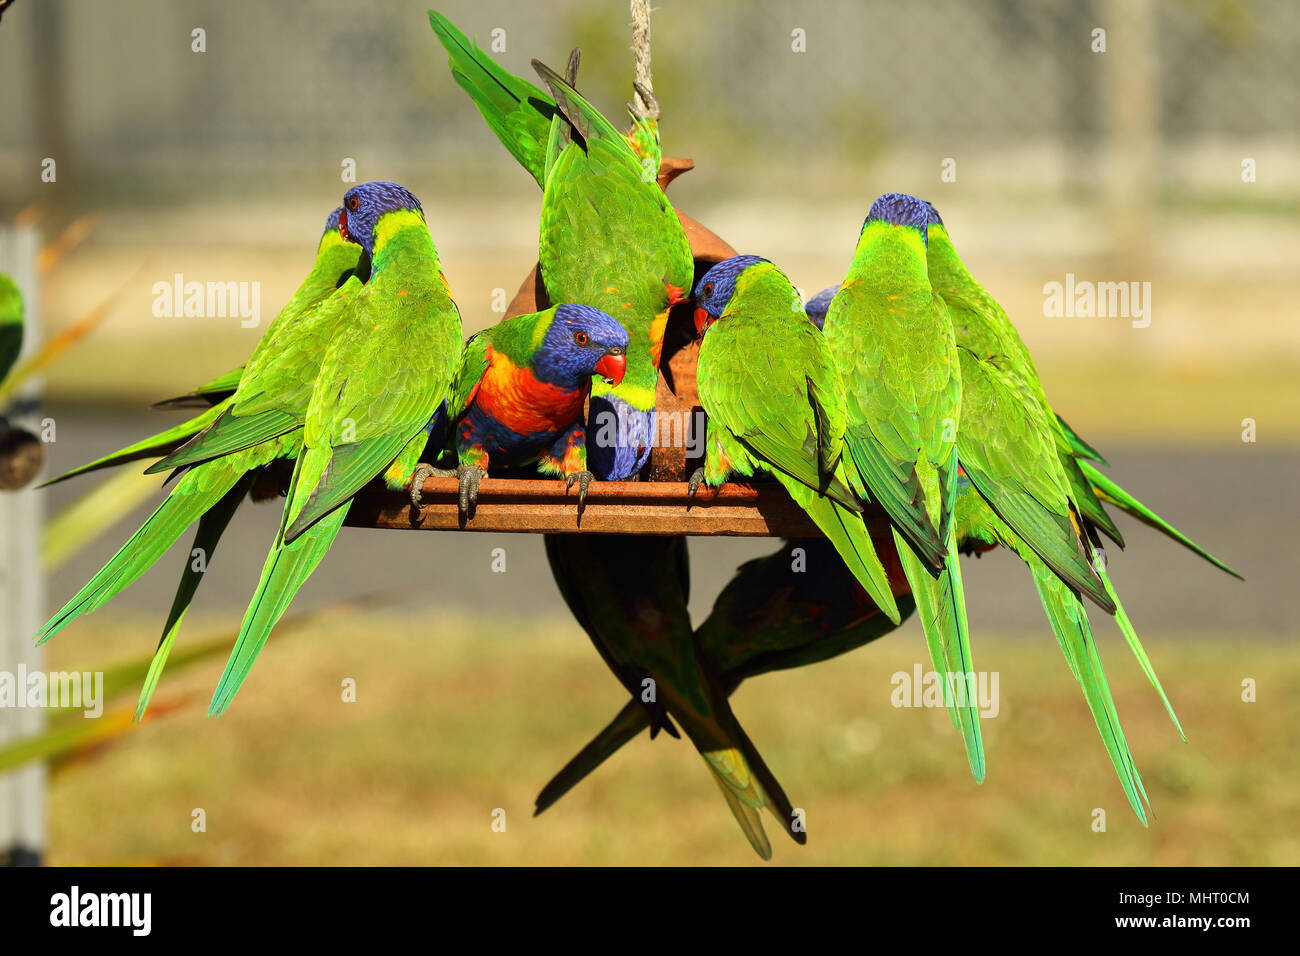 A group of Rainbow Lorikeets competing for food at a bird feeder. Stock Photo